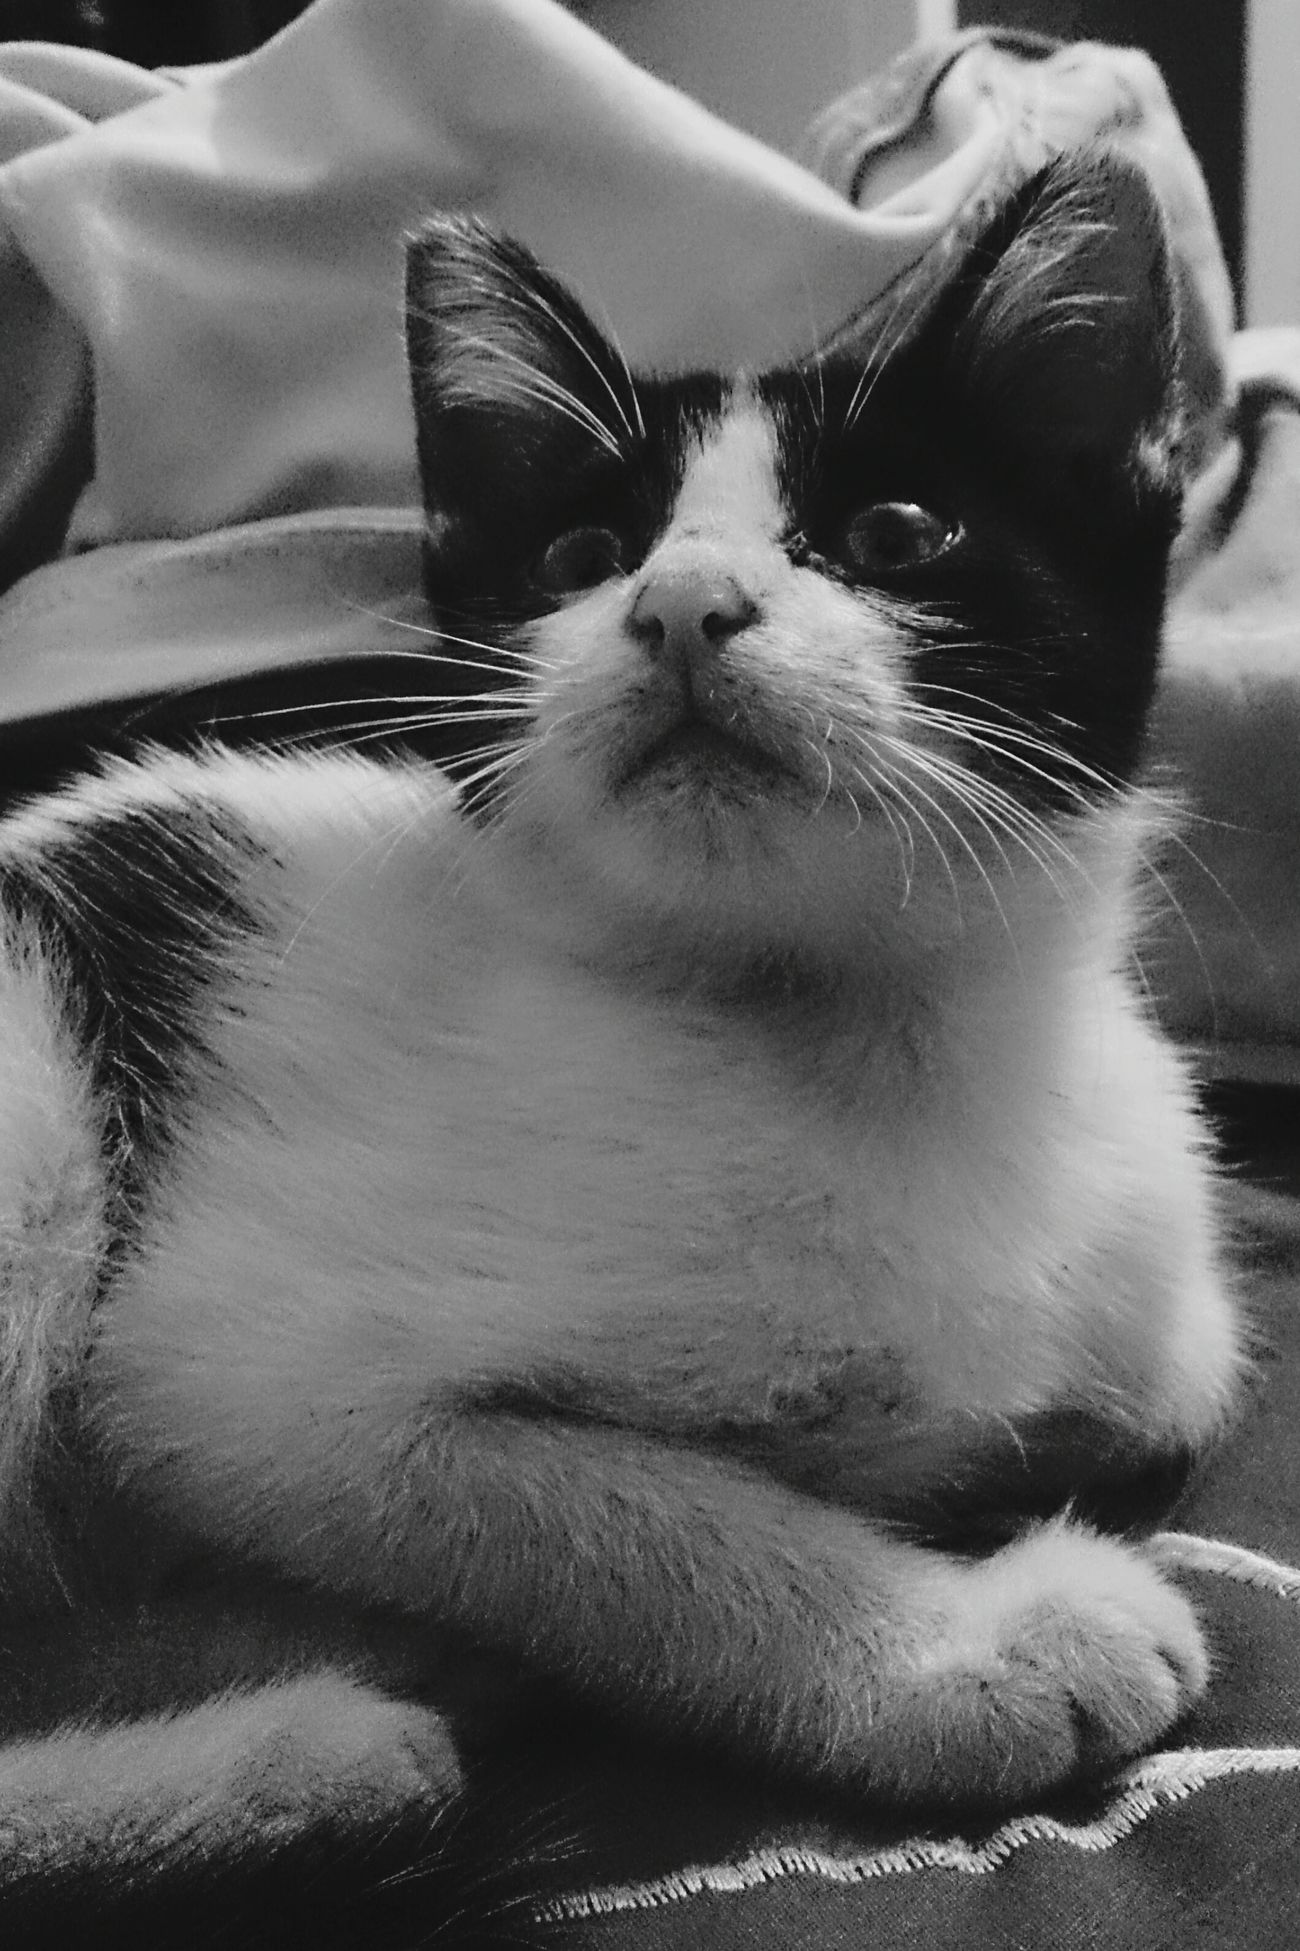 Wayne The Cat Lookingup Scared Cat Black And White Cuty Kitten Enjoying Life Taking Pictures Sylvester Adorable Resting Light Animal Chilling Relaxing Purr